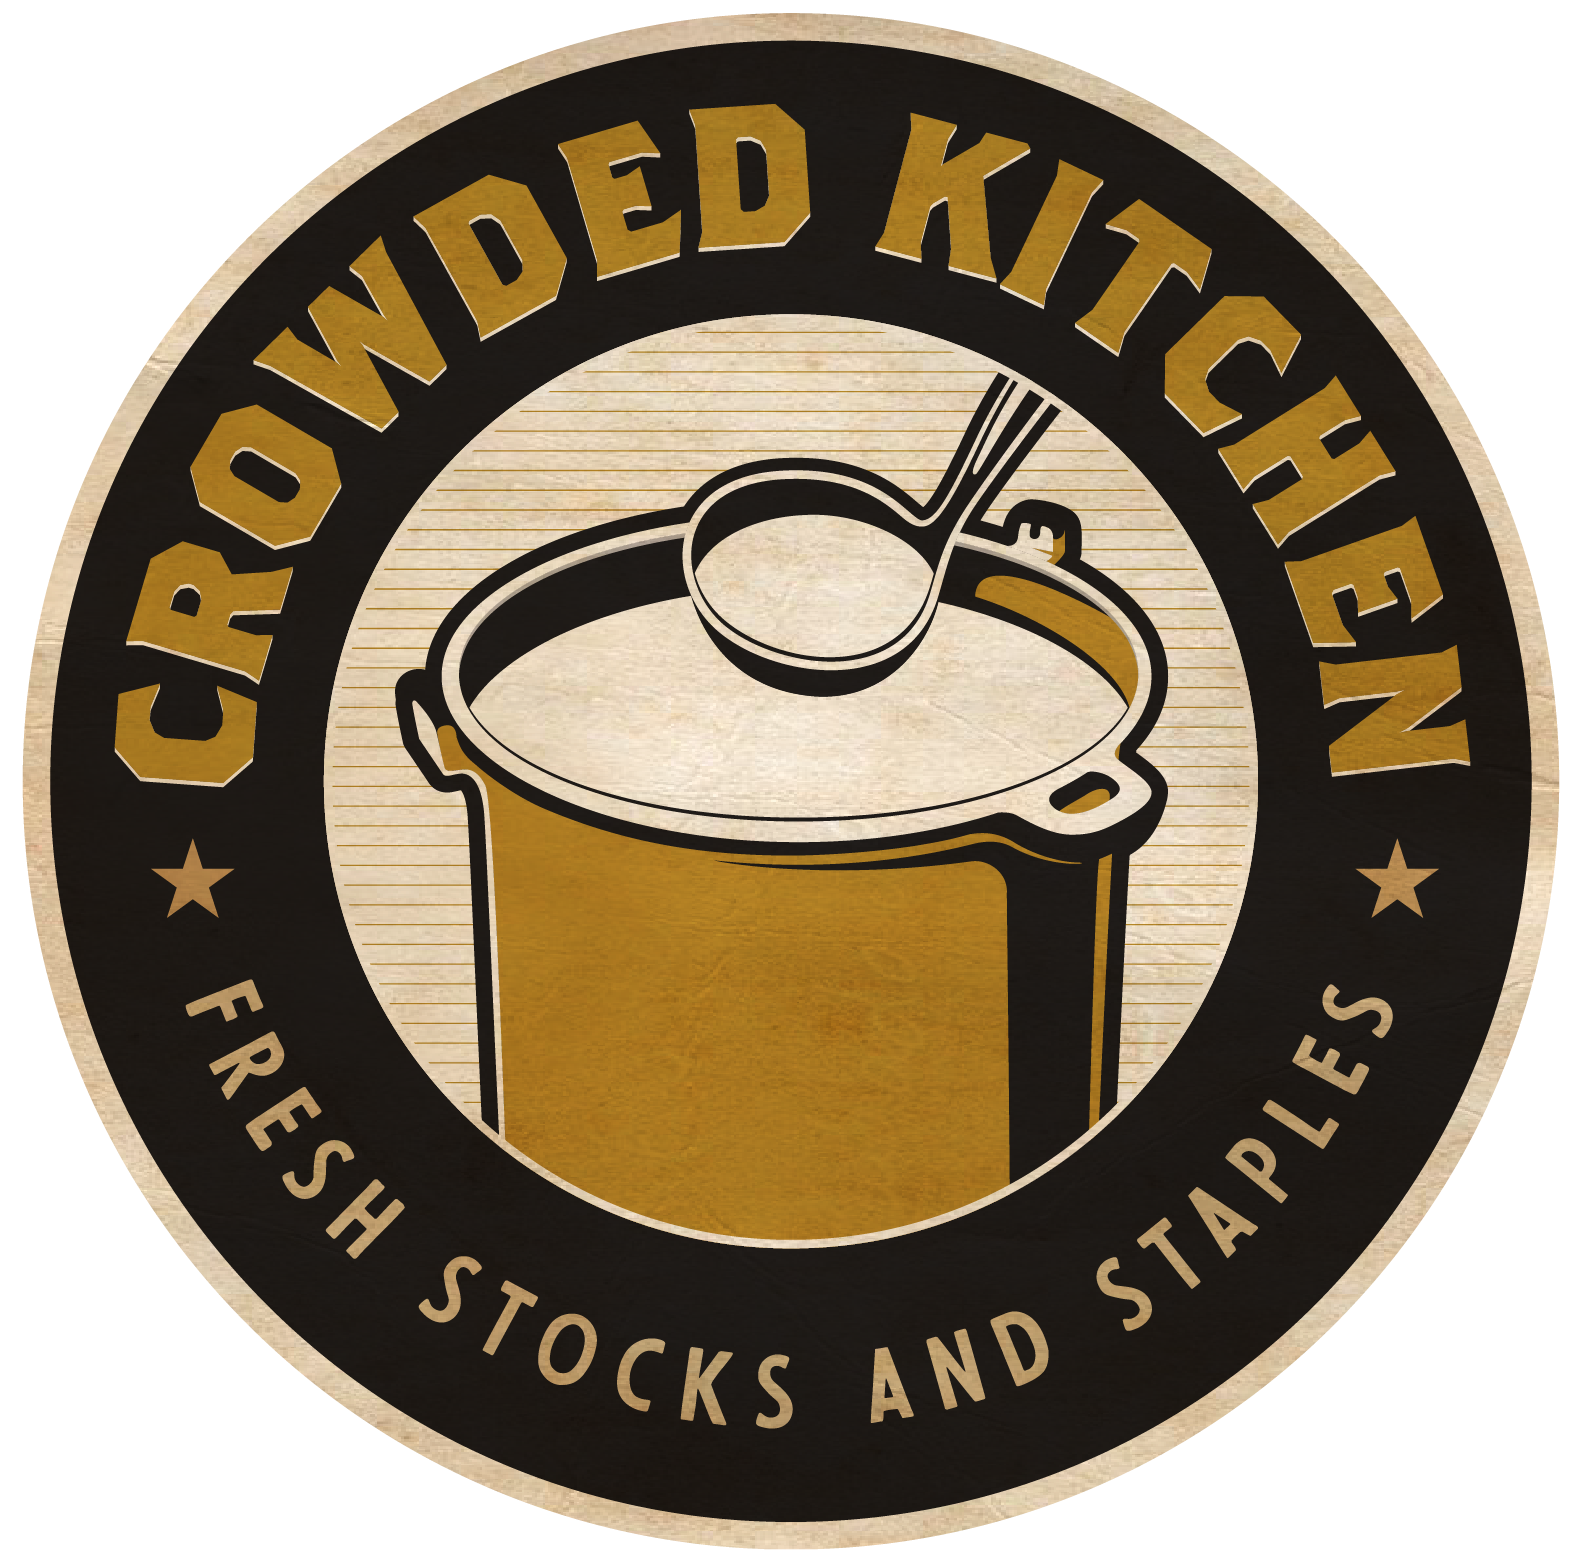 Crowded Kitchen needs a logo